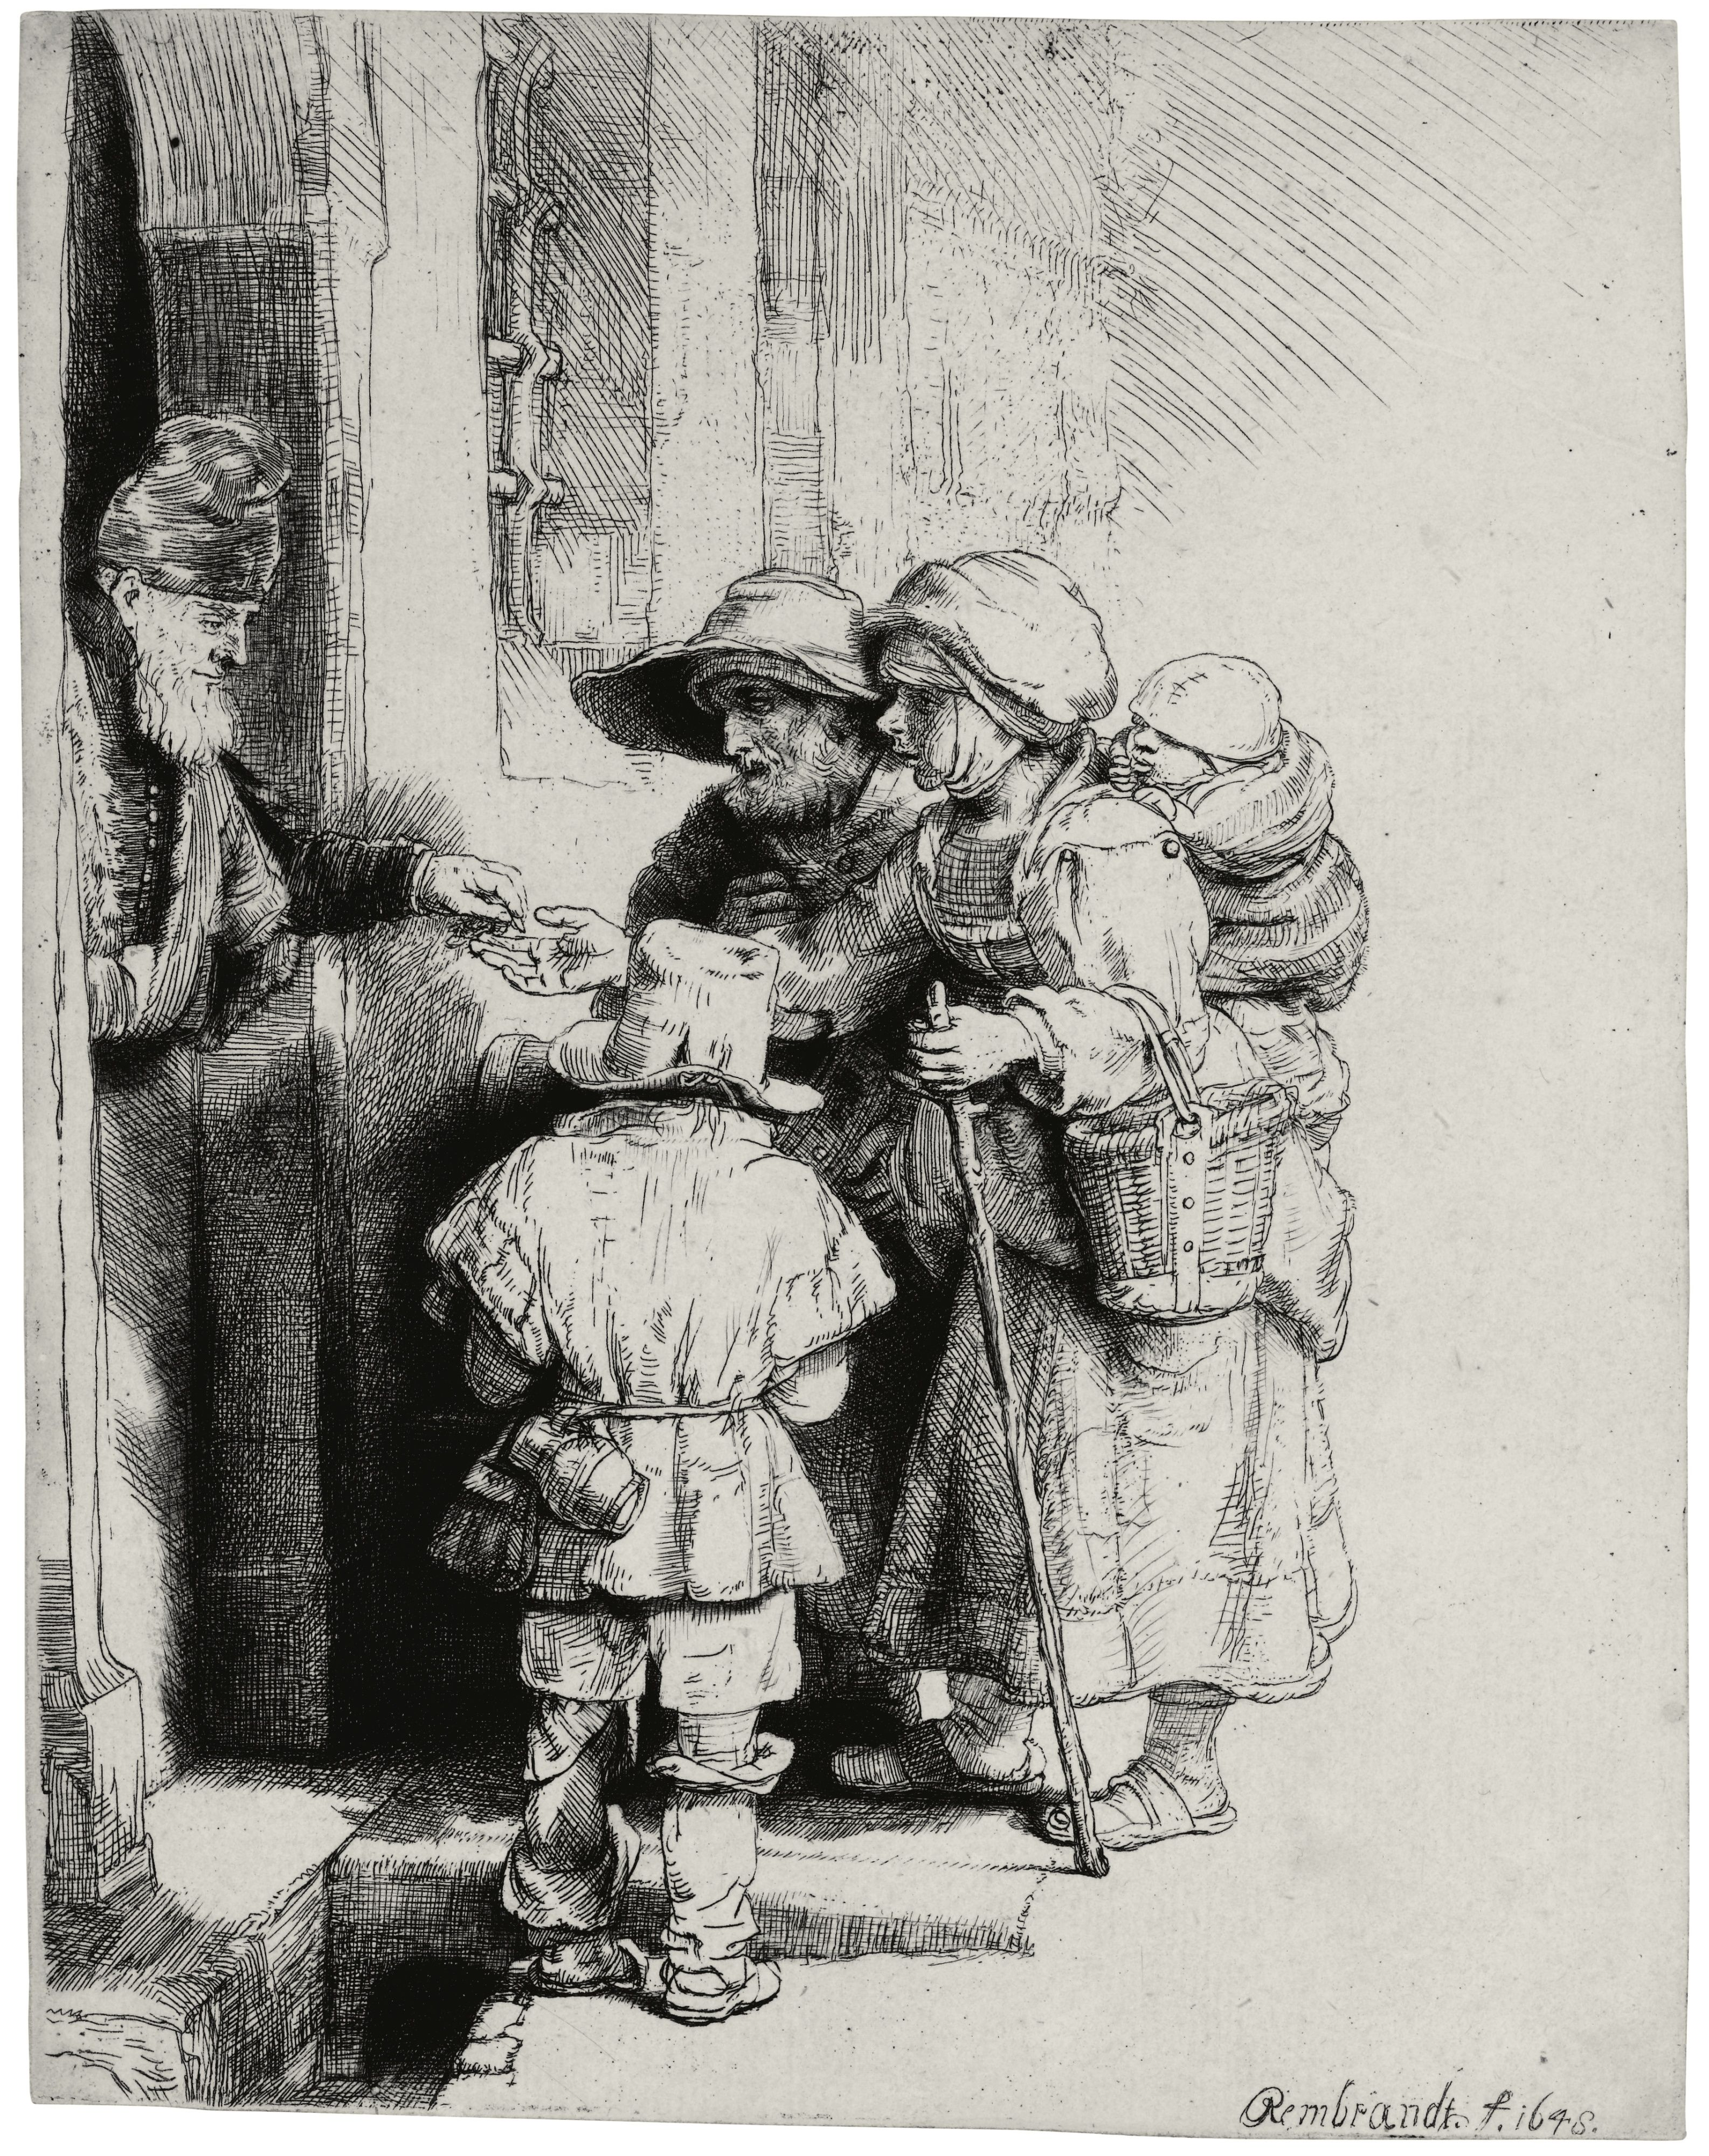 Rembrandt \u2013 BEGGARS RECEIVING ALMS AT THE DOOR OF A HOUSE 1648 : rembrand doors - Pezcame.Com